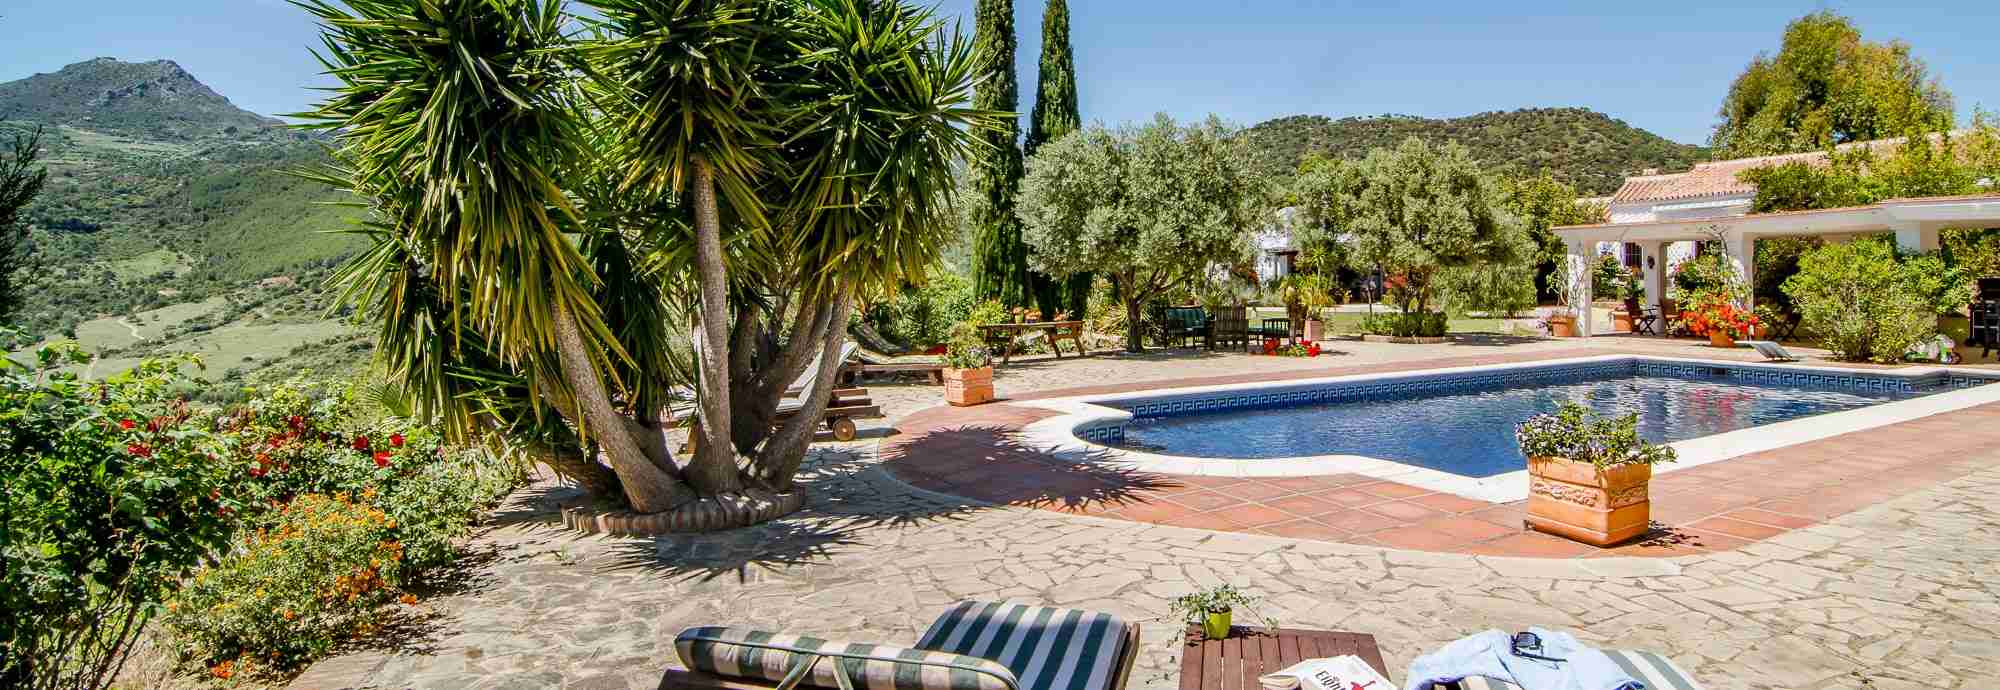 Tasteful Andalucia villa near Gaucin, the coast, and adventure parks